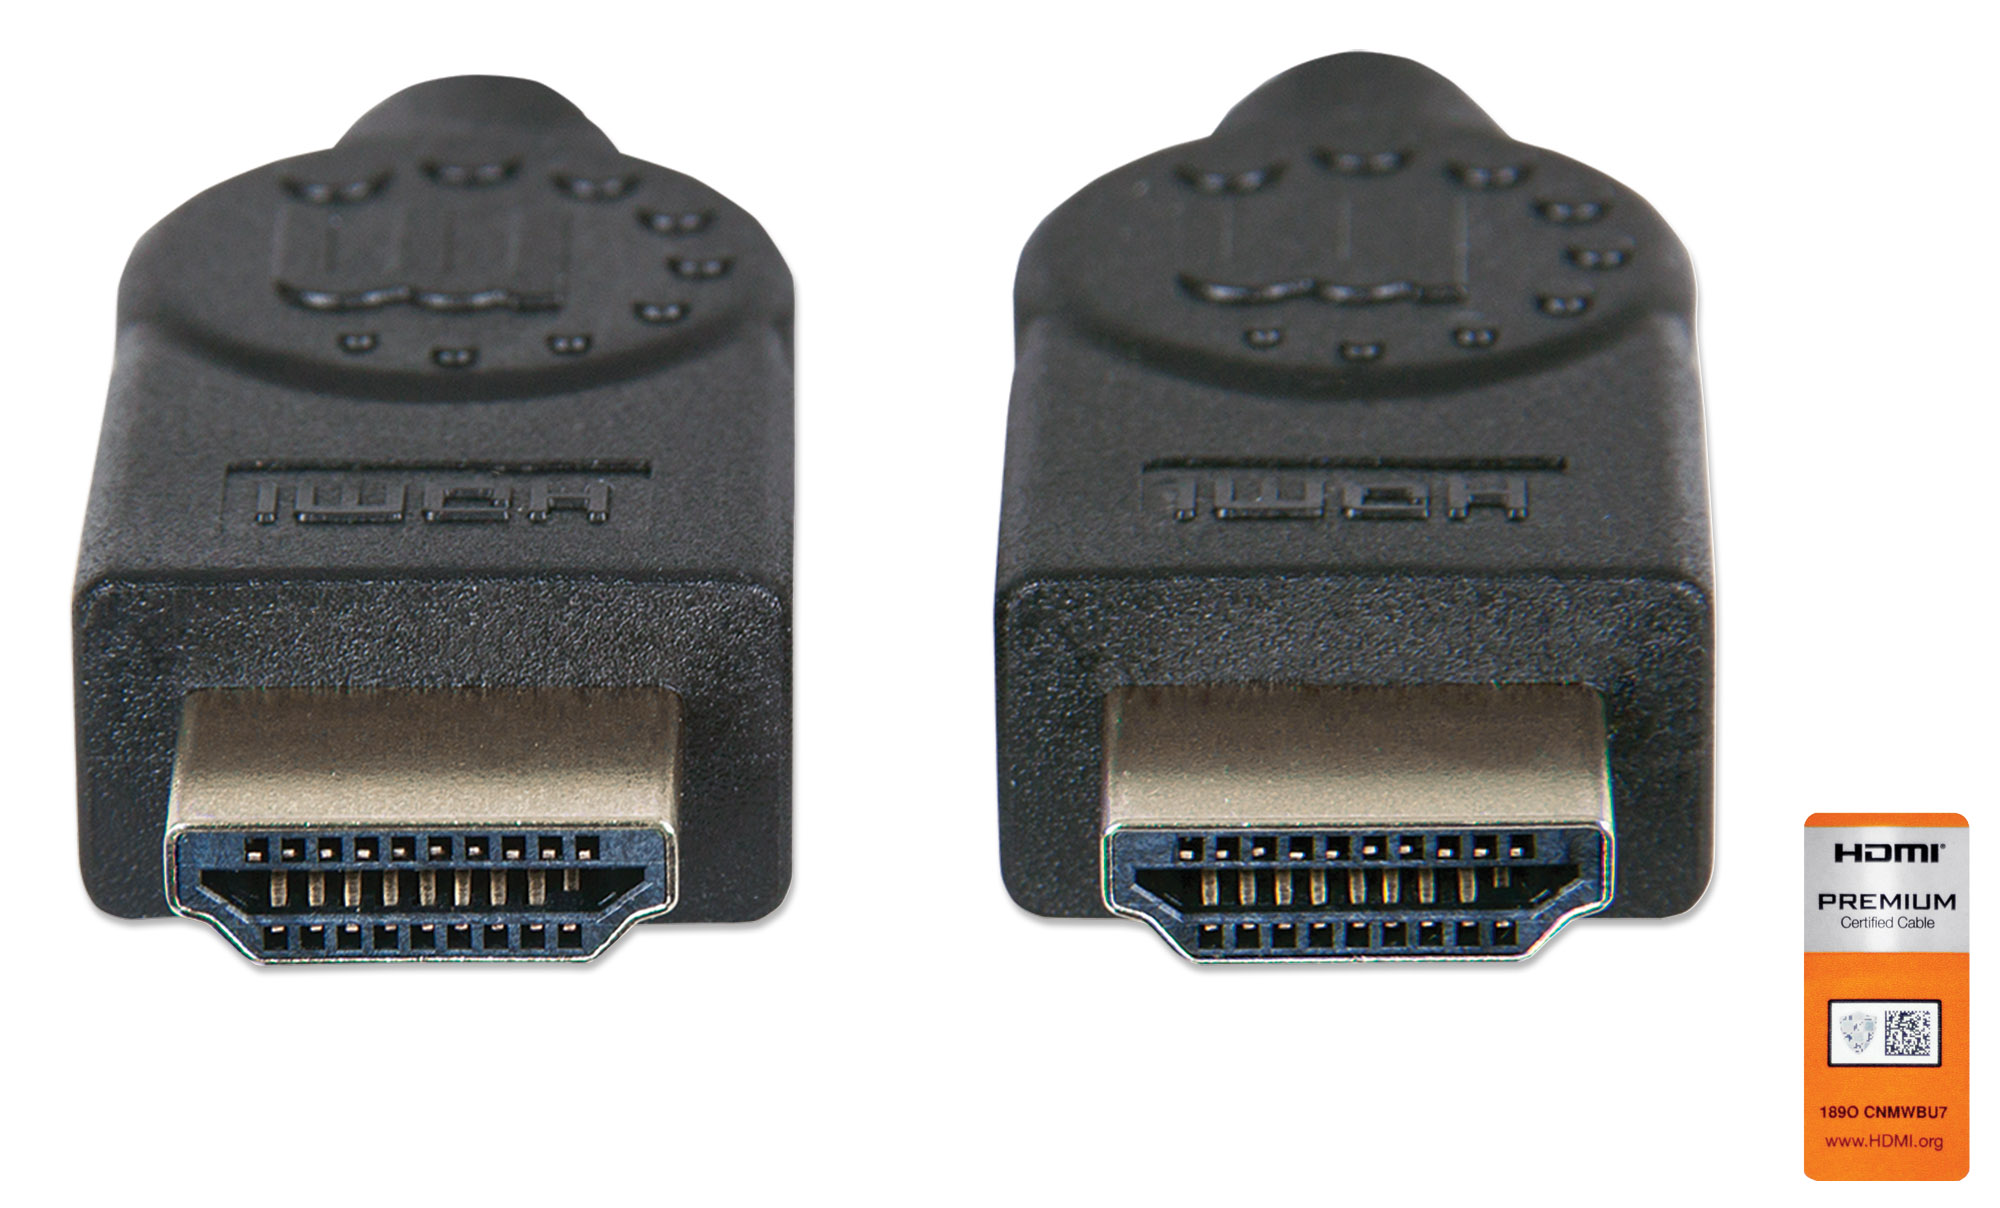 Certified Premium High Speed HDMI Cable with Ethernet